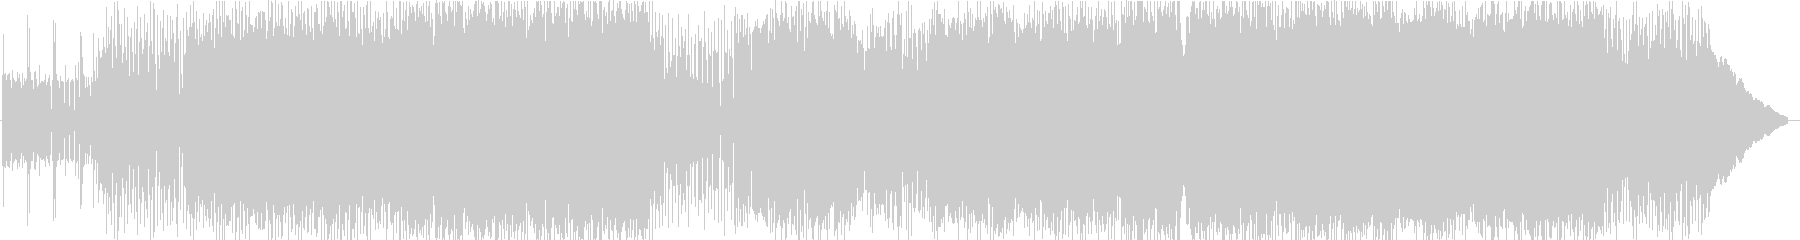 Positive Upbeat Rock featuring violin, electric guitars. (Title : Wake Up!)'s unreproduced waveform